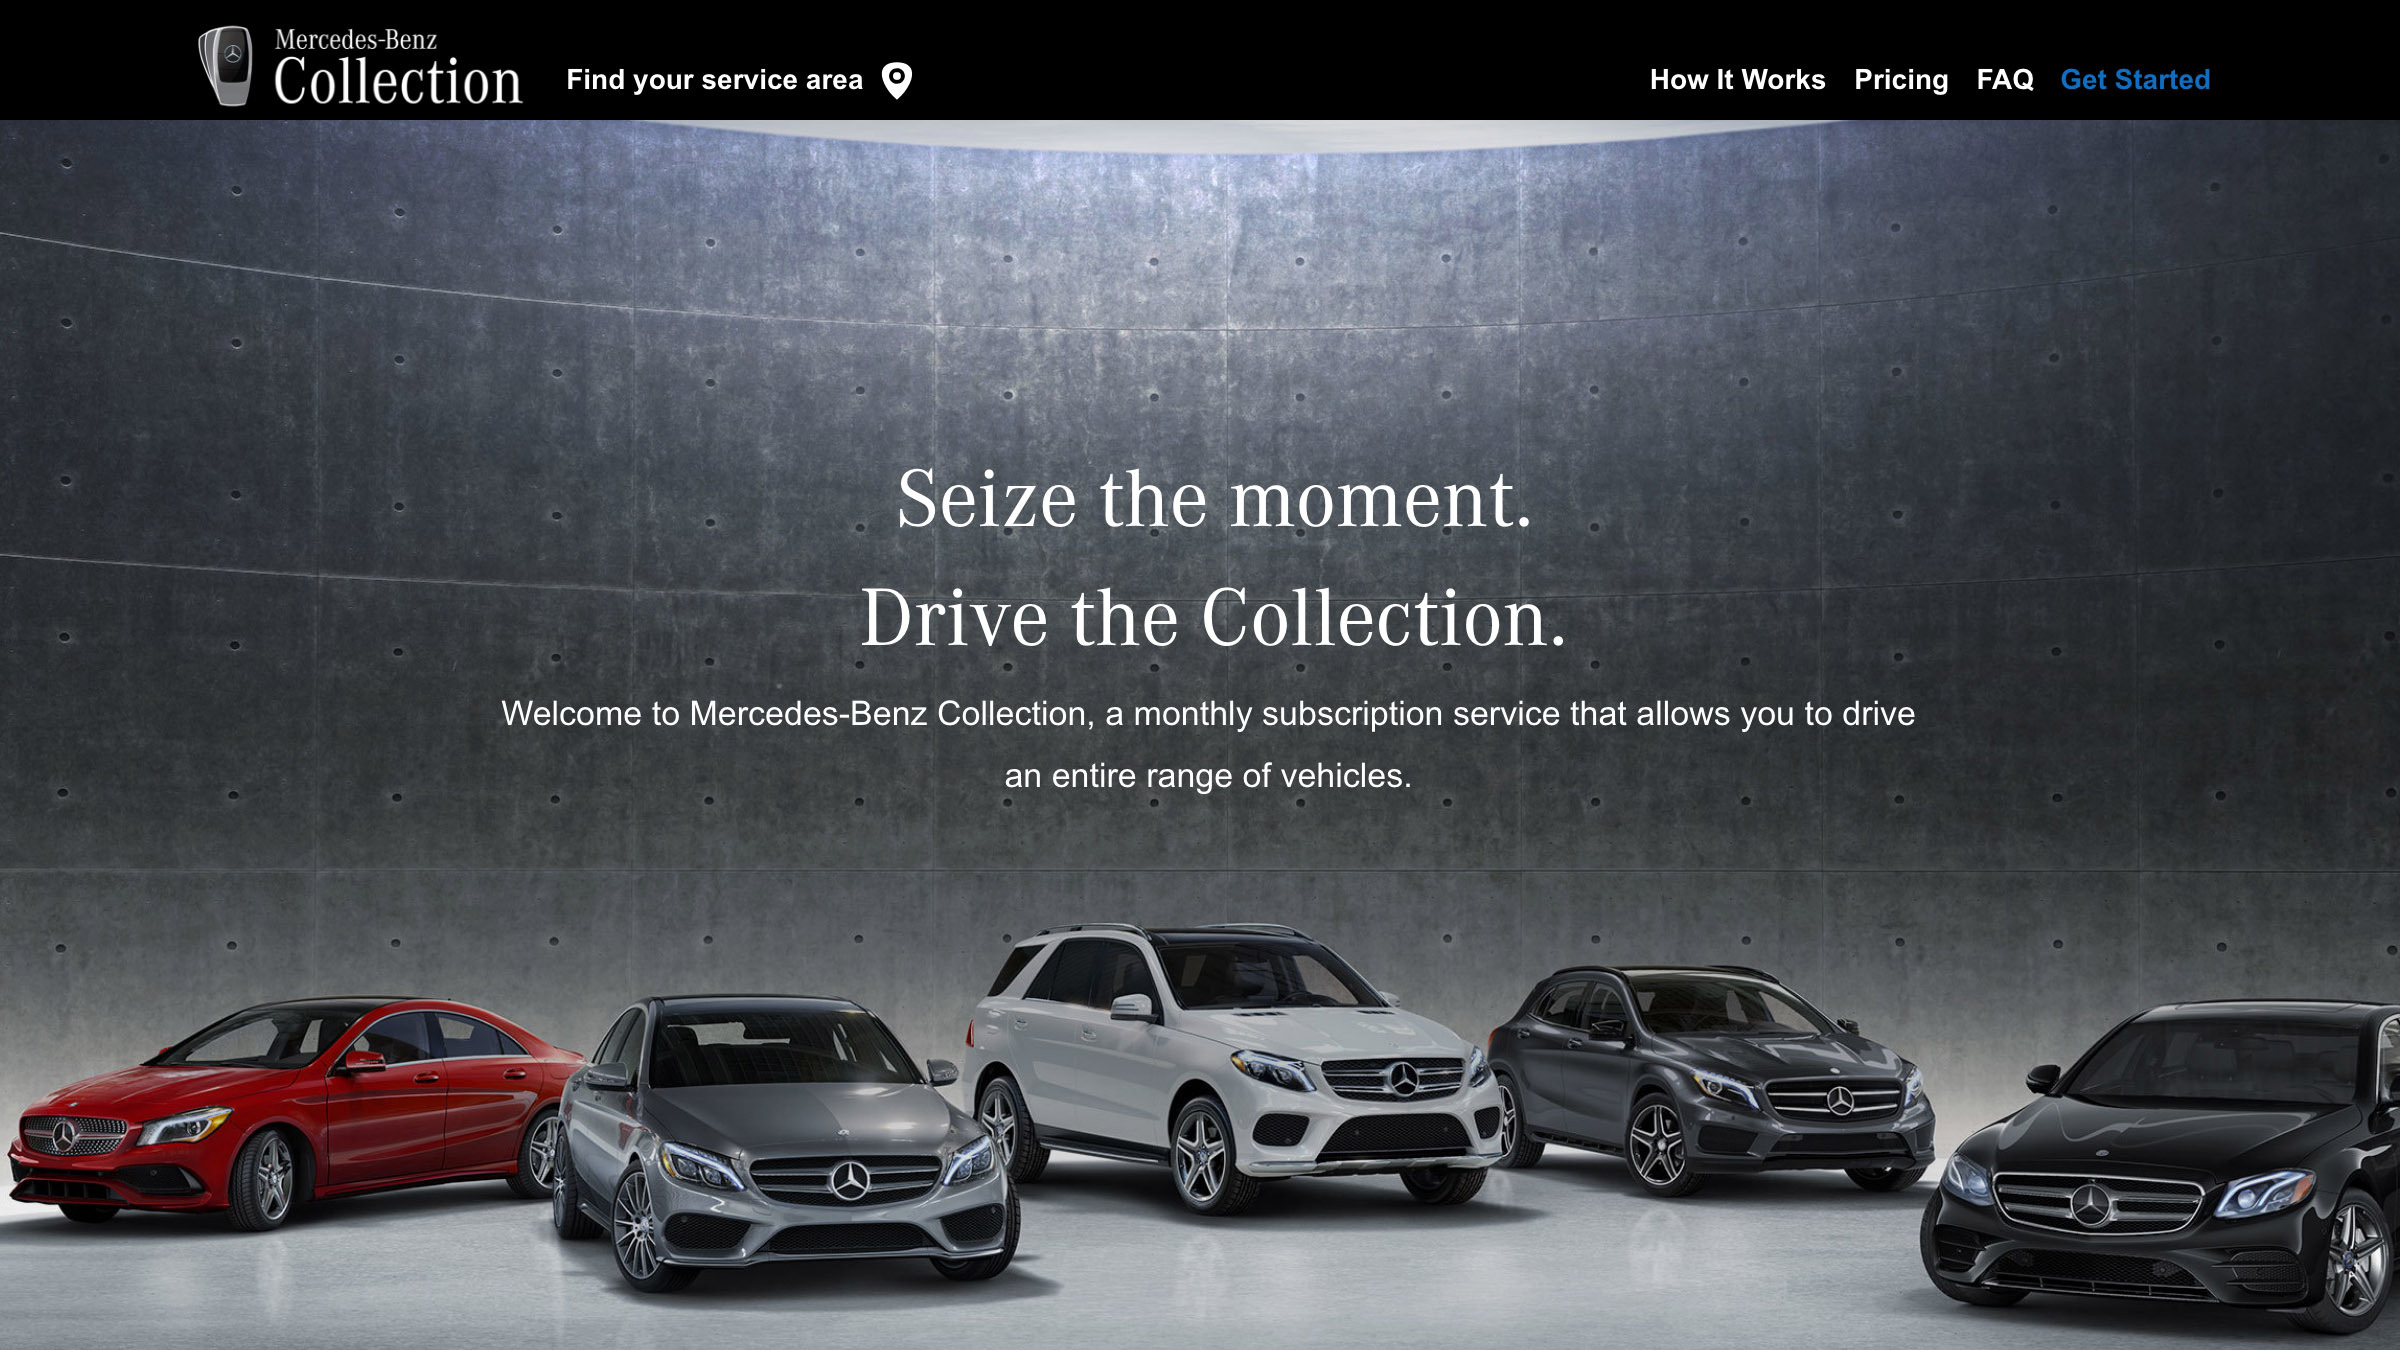 Mercedes benz launches broadest luxury vehicle subscription plan in mercedes benz usa donna boland 770 705 2009 or mercedes benz financial services mary beth halprin 248 220 9346 altavistaventures Image collections